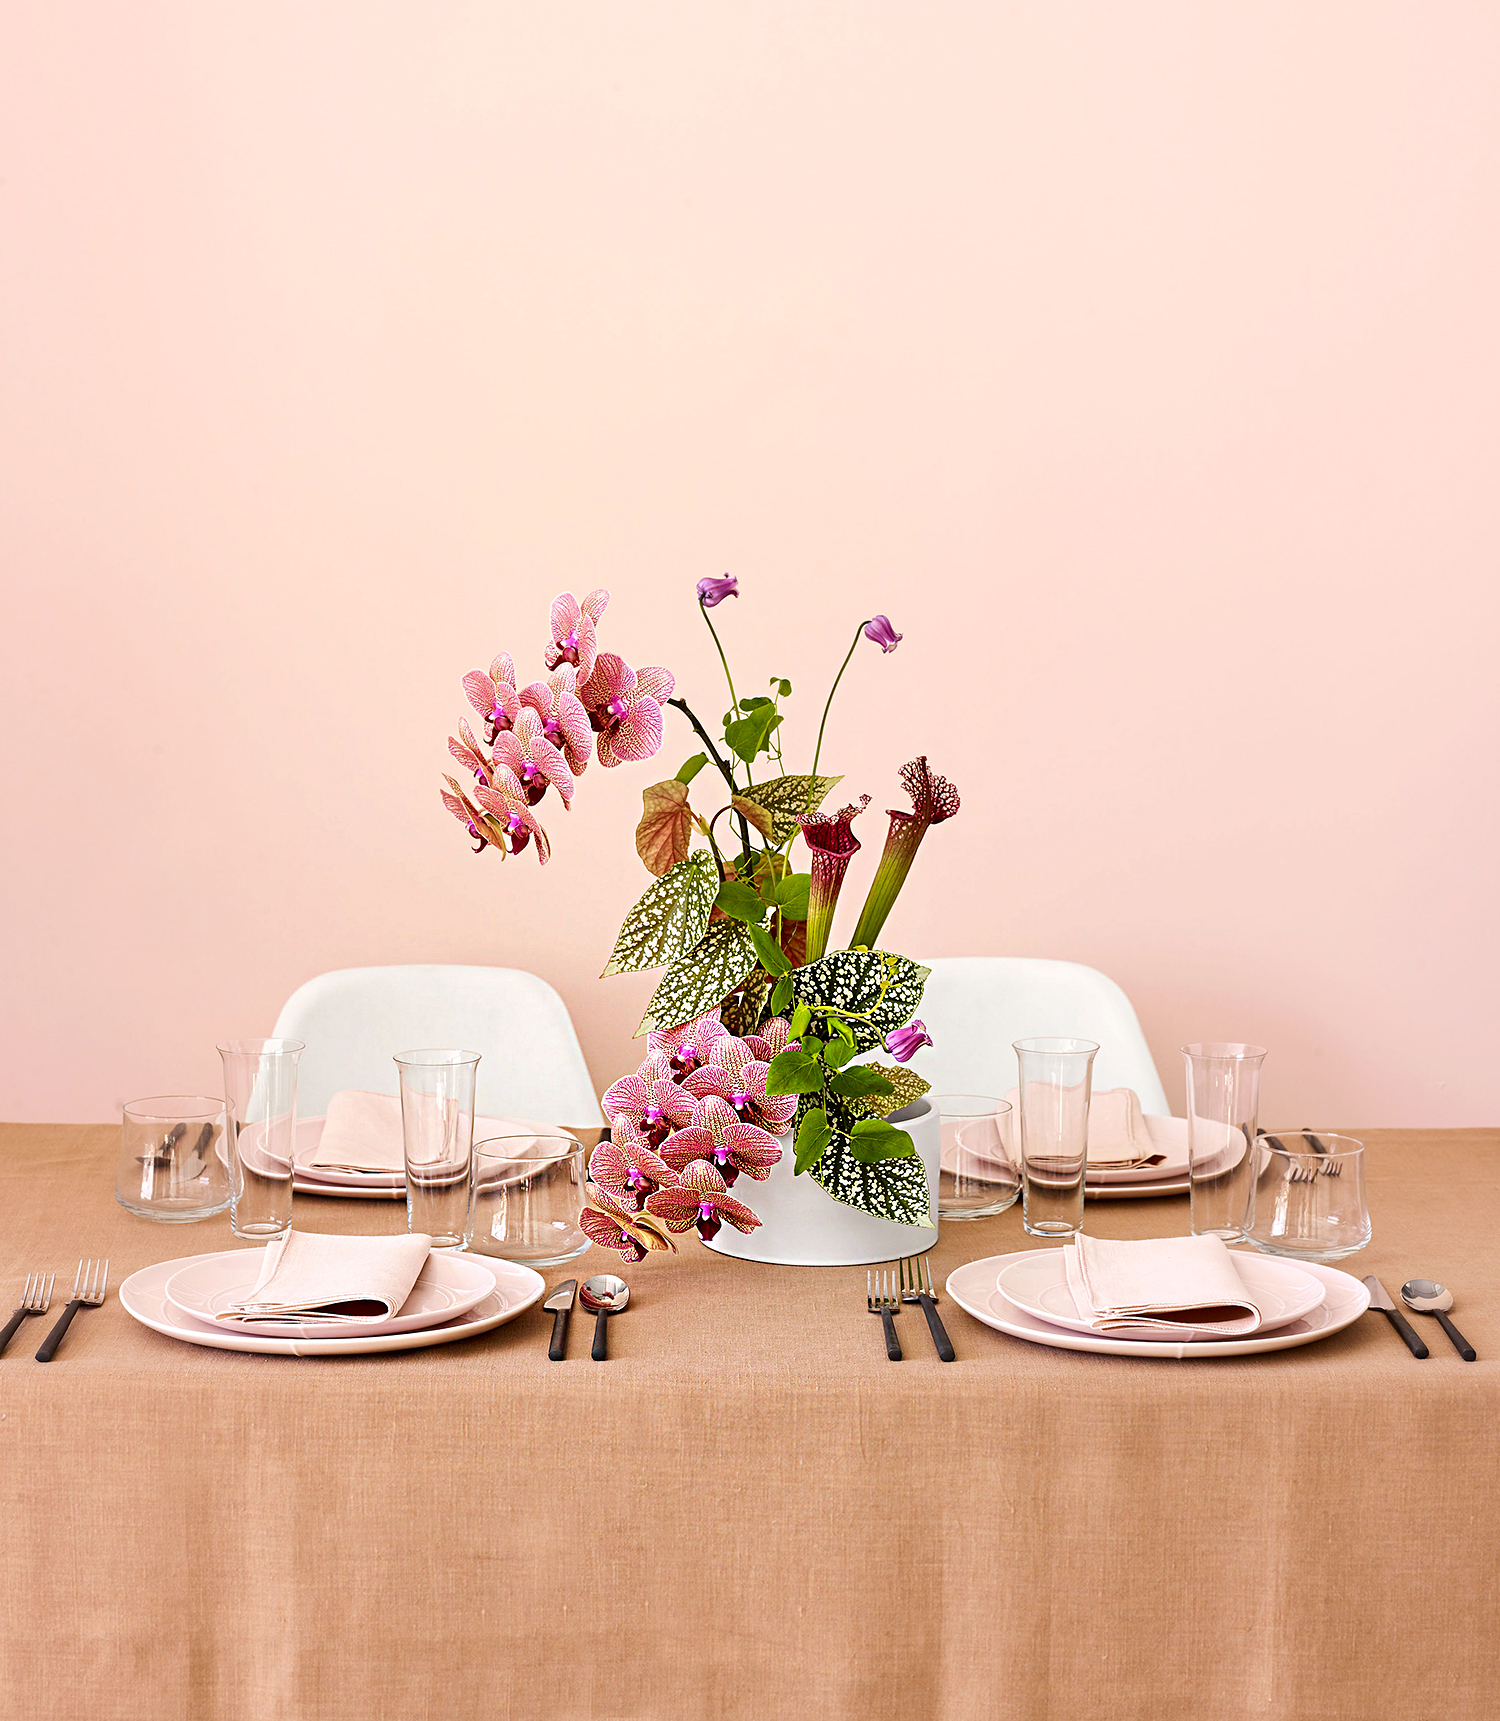 These Japanese-Inspired Centerpieces Are the Florals Your Minimalist Wedding Needs